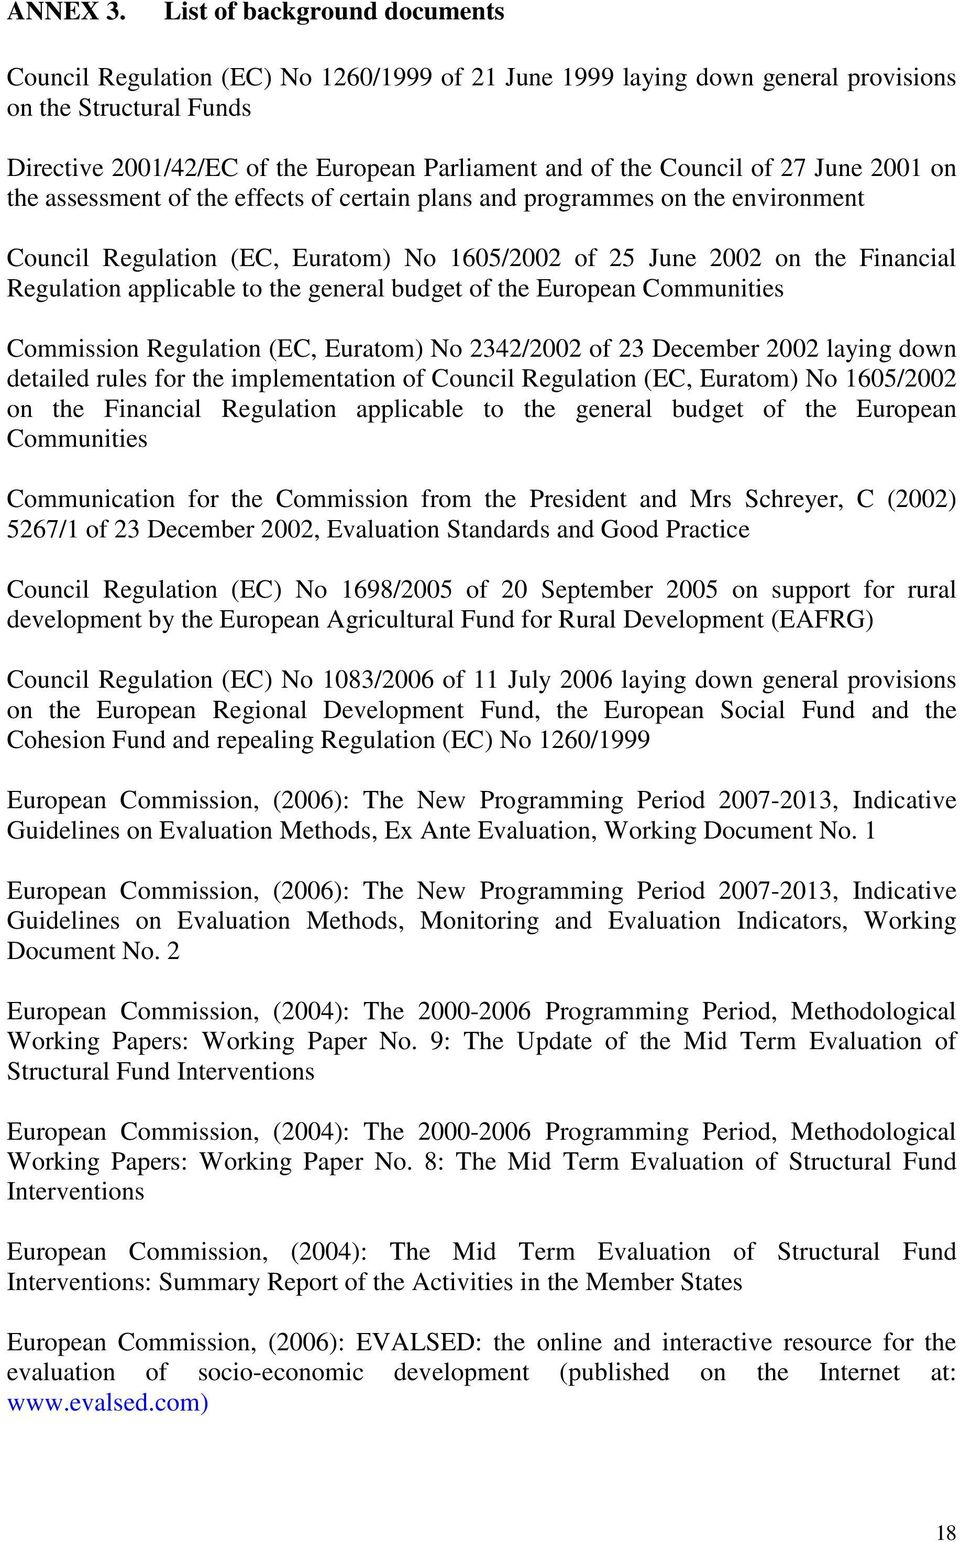 Council of 27 June 2001 on the assessment of the effects of certain plans and programmes on the environment Council Regulation (EC, Euratom) No 1605/2002 of 25 June 2002 on the Financial Regulation